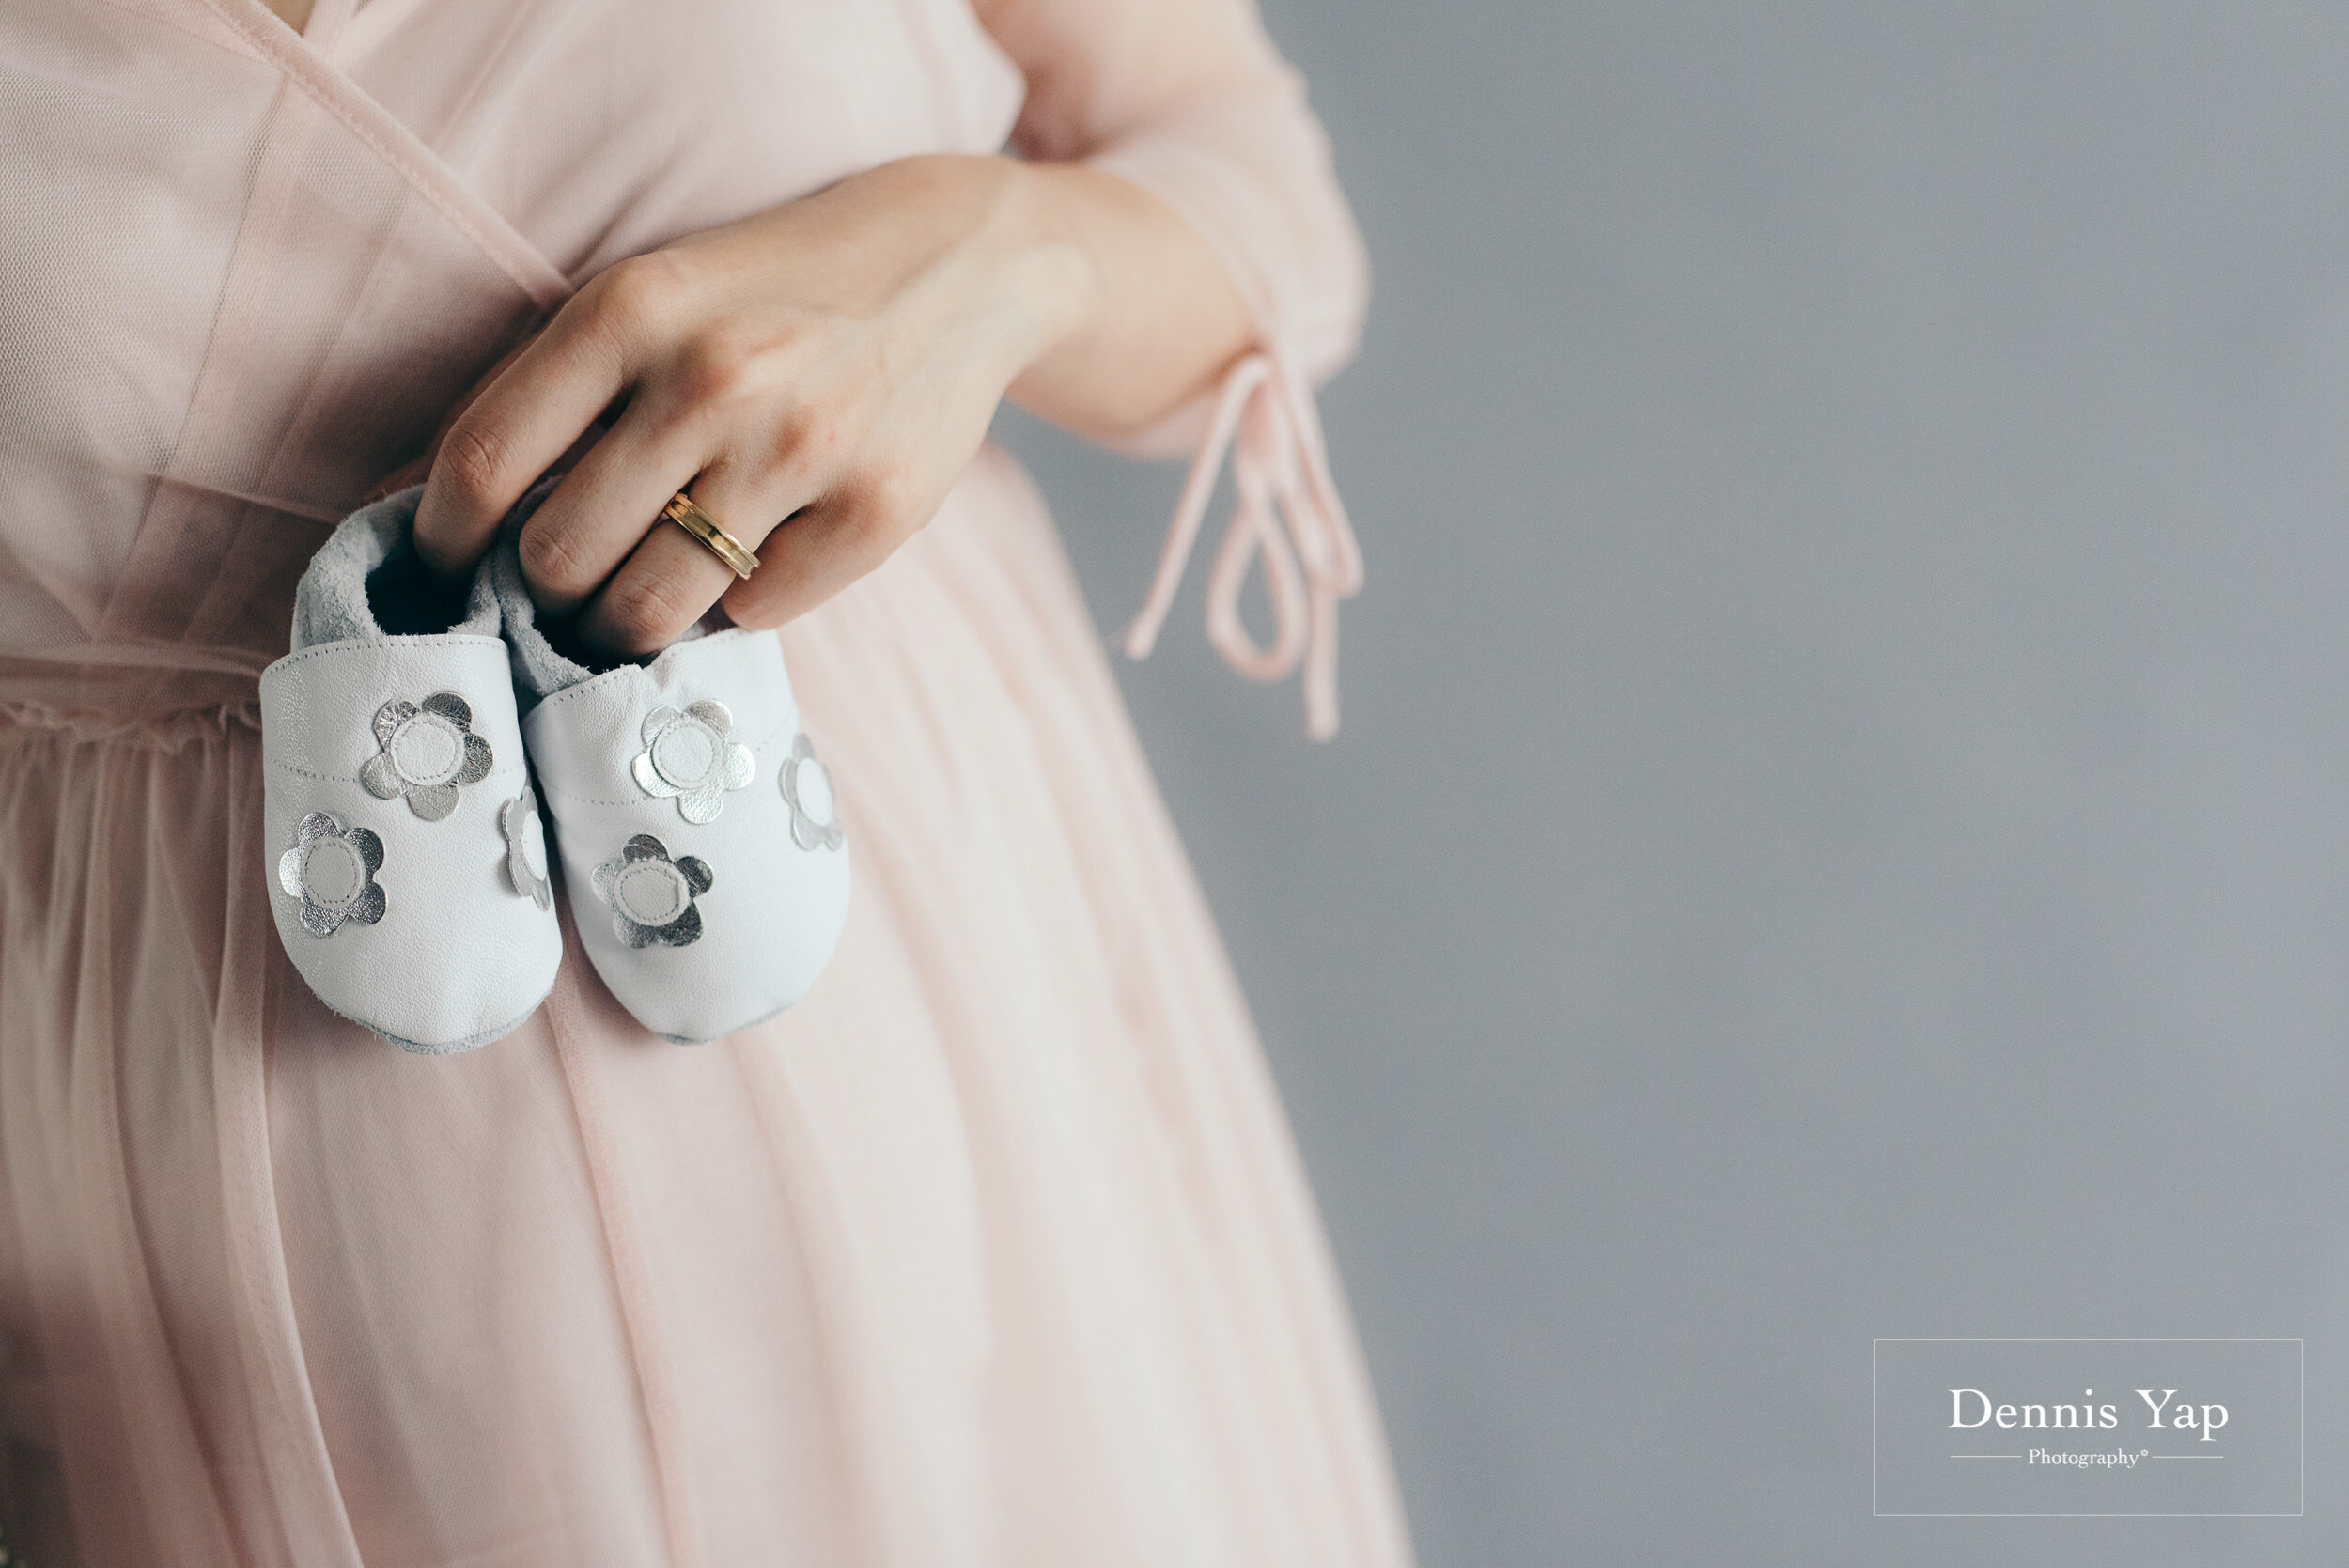 hwee jenna family maternity portrait portrait dennis yap photography beloved studio indoor-121.jpg